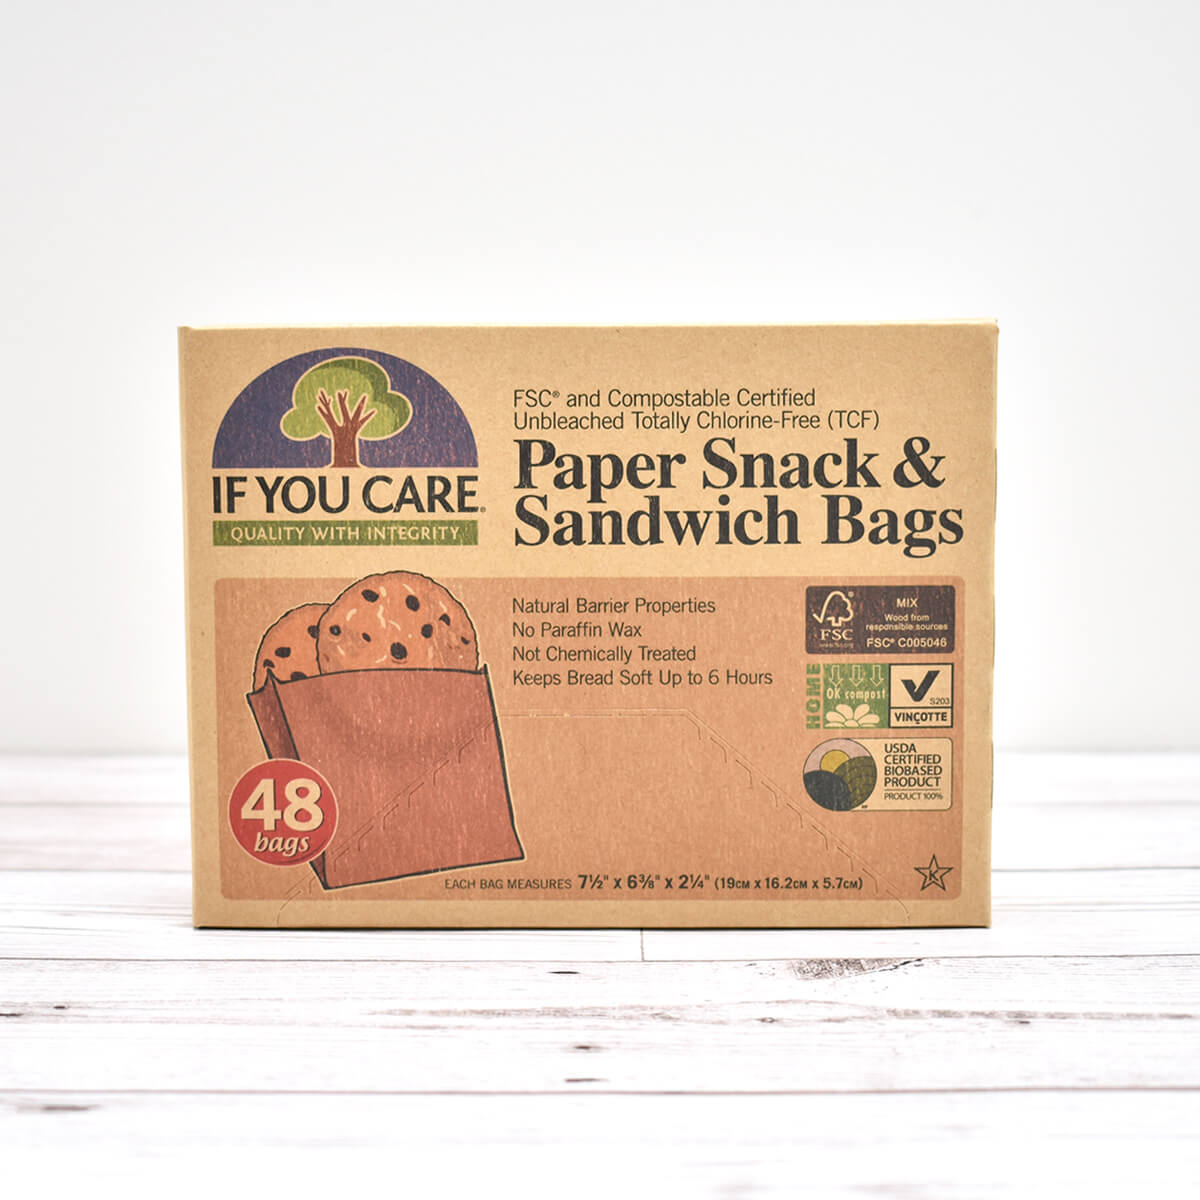 Paper Snack & Sandwich Bags | If You Care